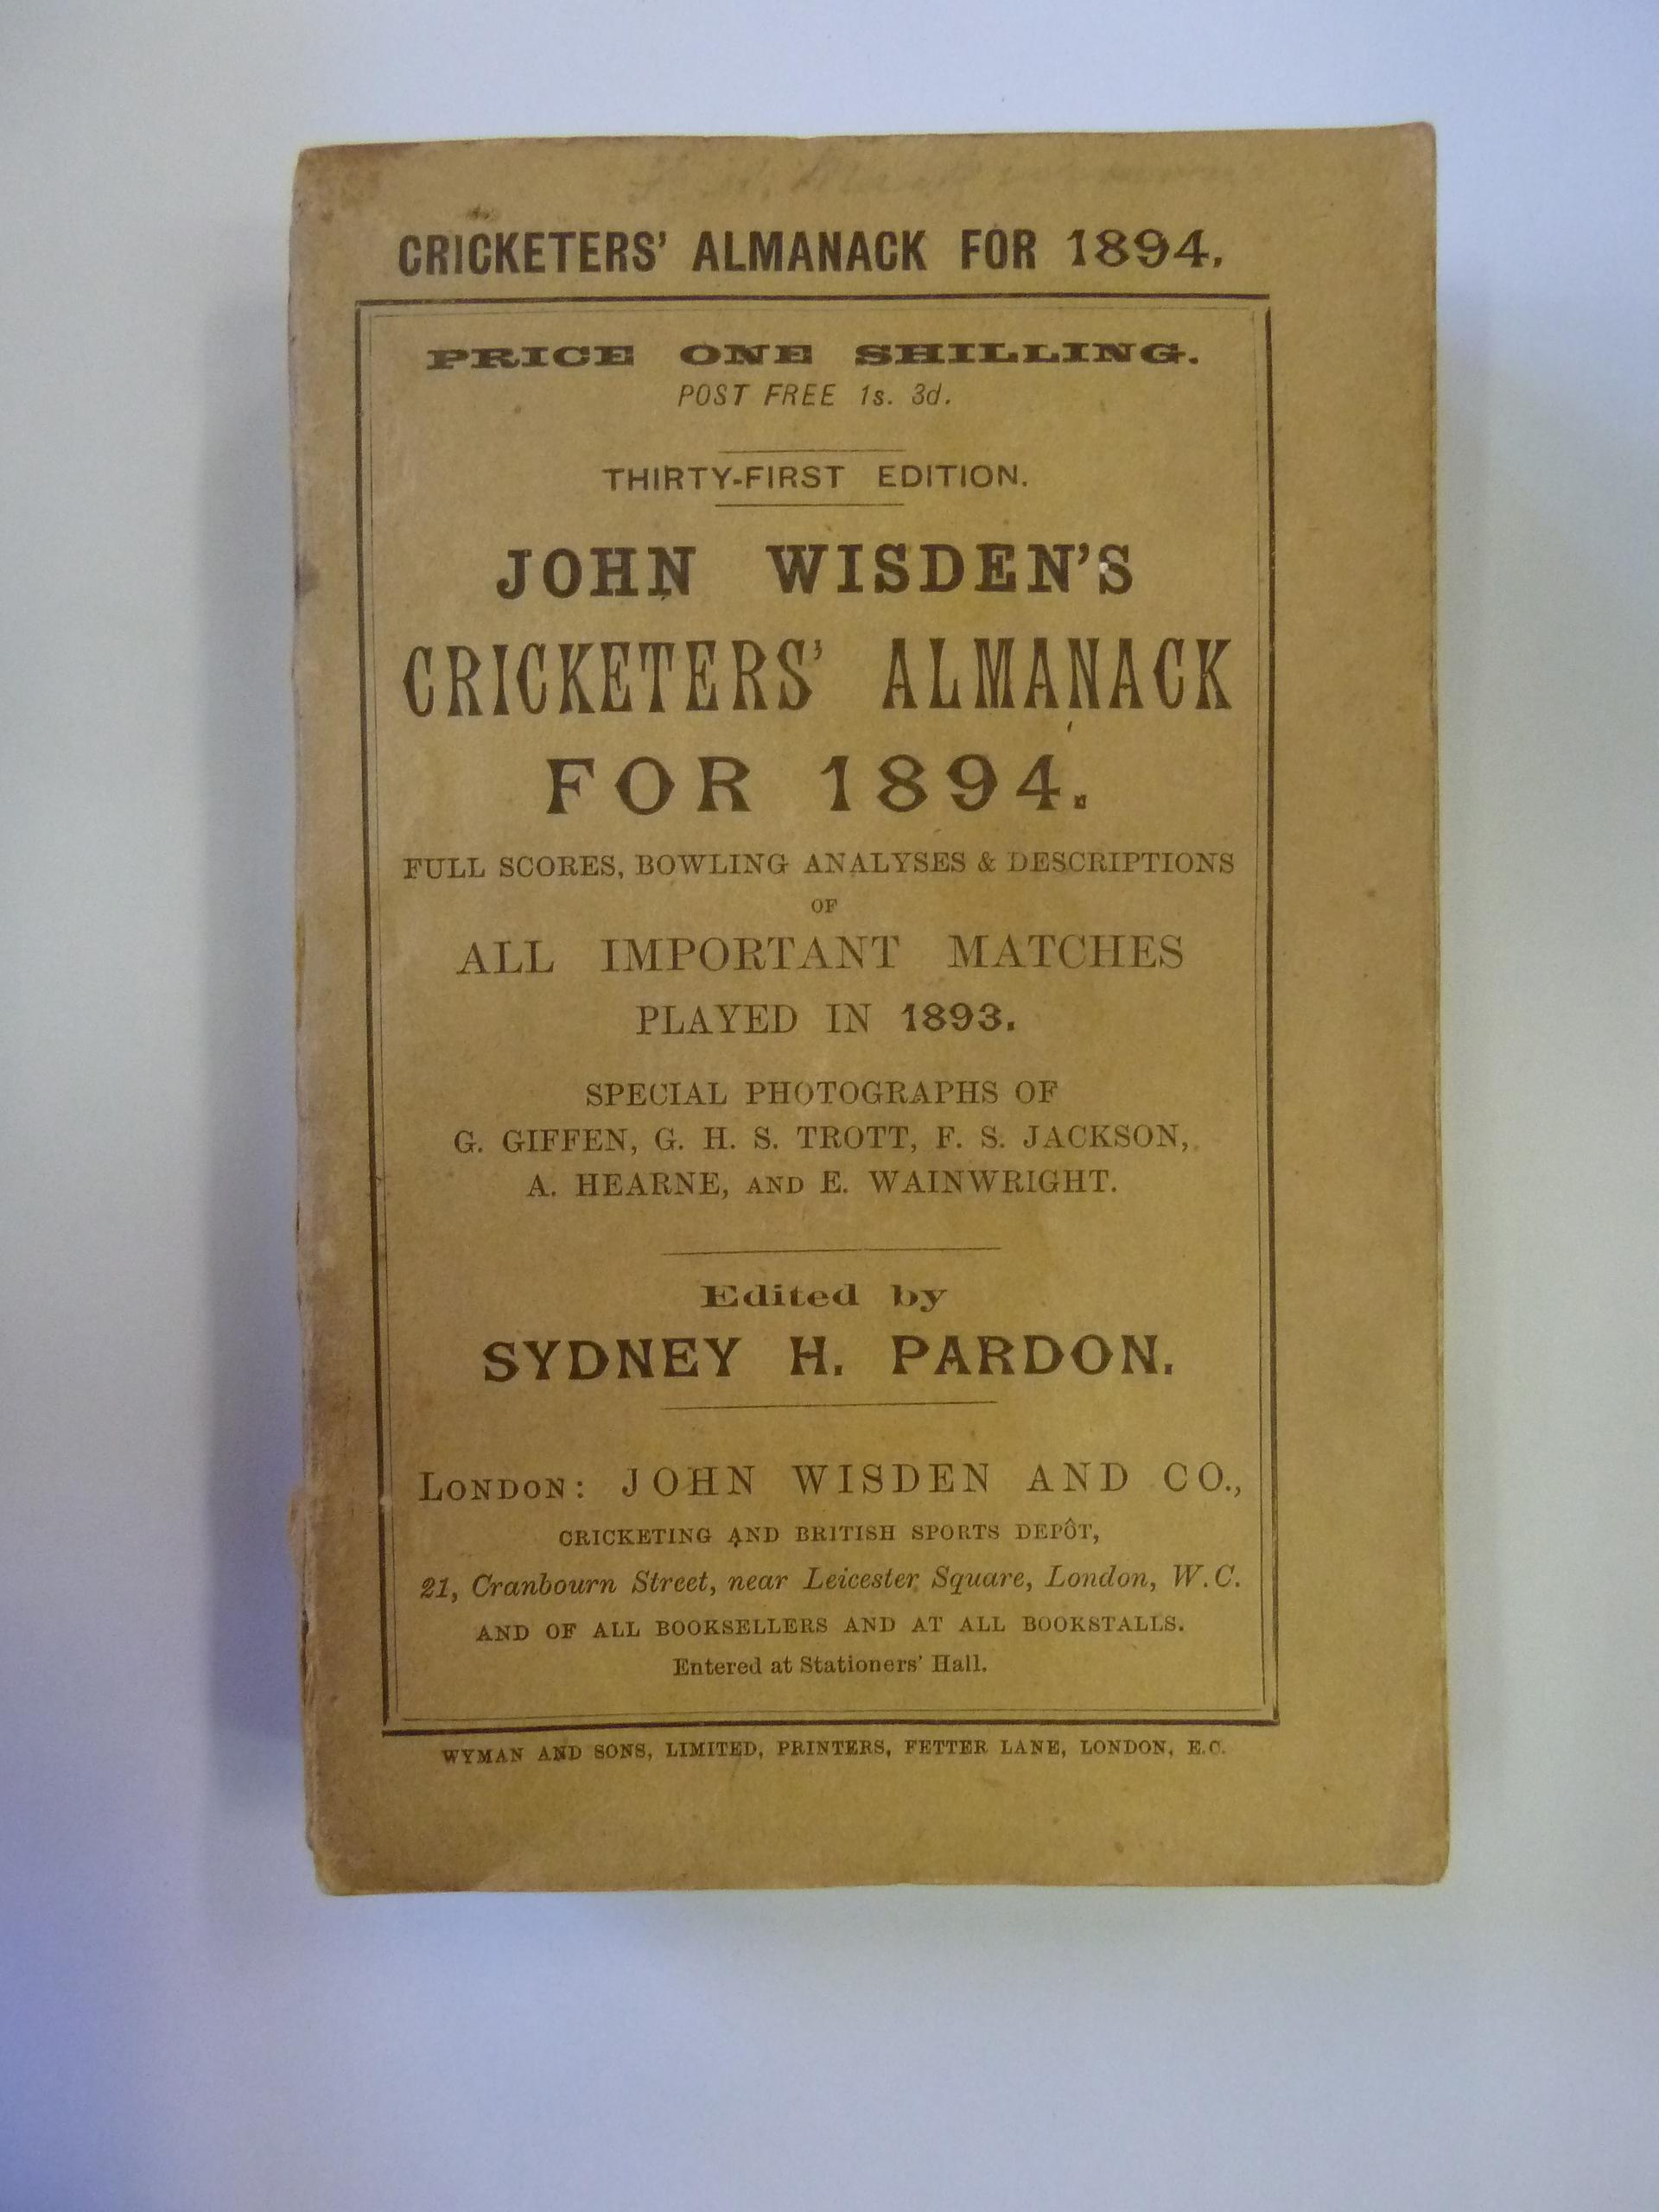 John Wisden's Cricketers' Almanack For 1894